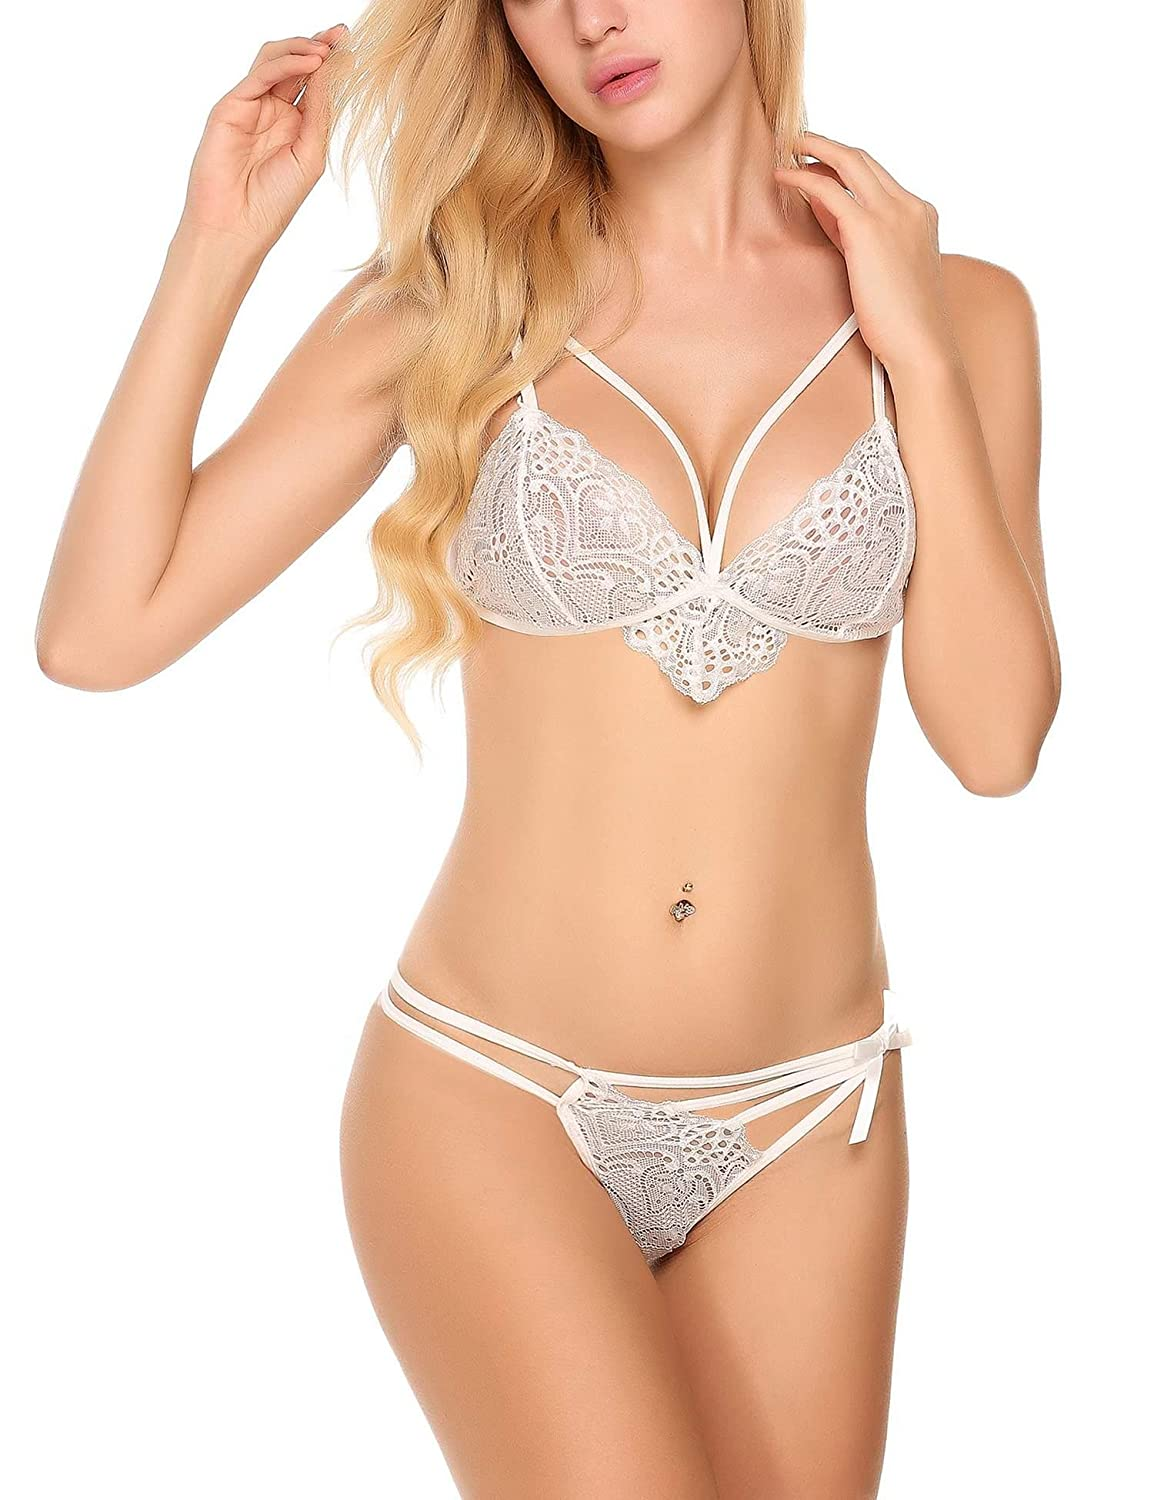 43e238cb3f0 Kissgal Women s Bridal Lingerie Strappy Lace Bra and Panty Babydoll  Bodysuit Sets at Amazon Women s Clothing store